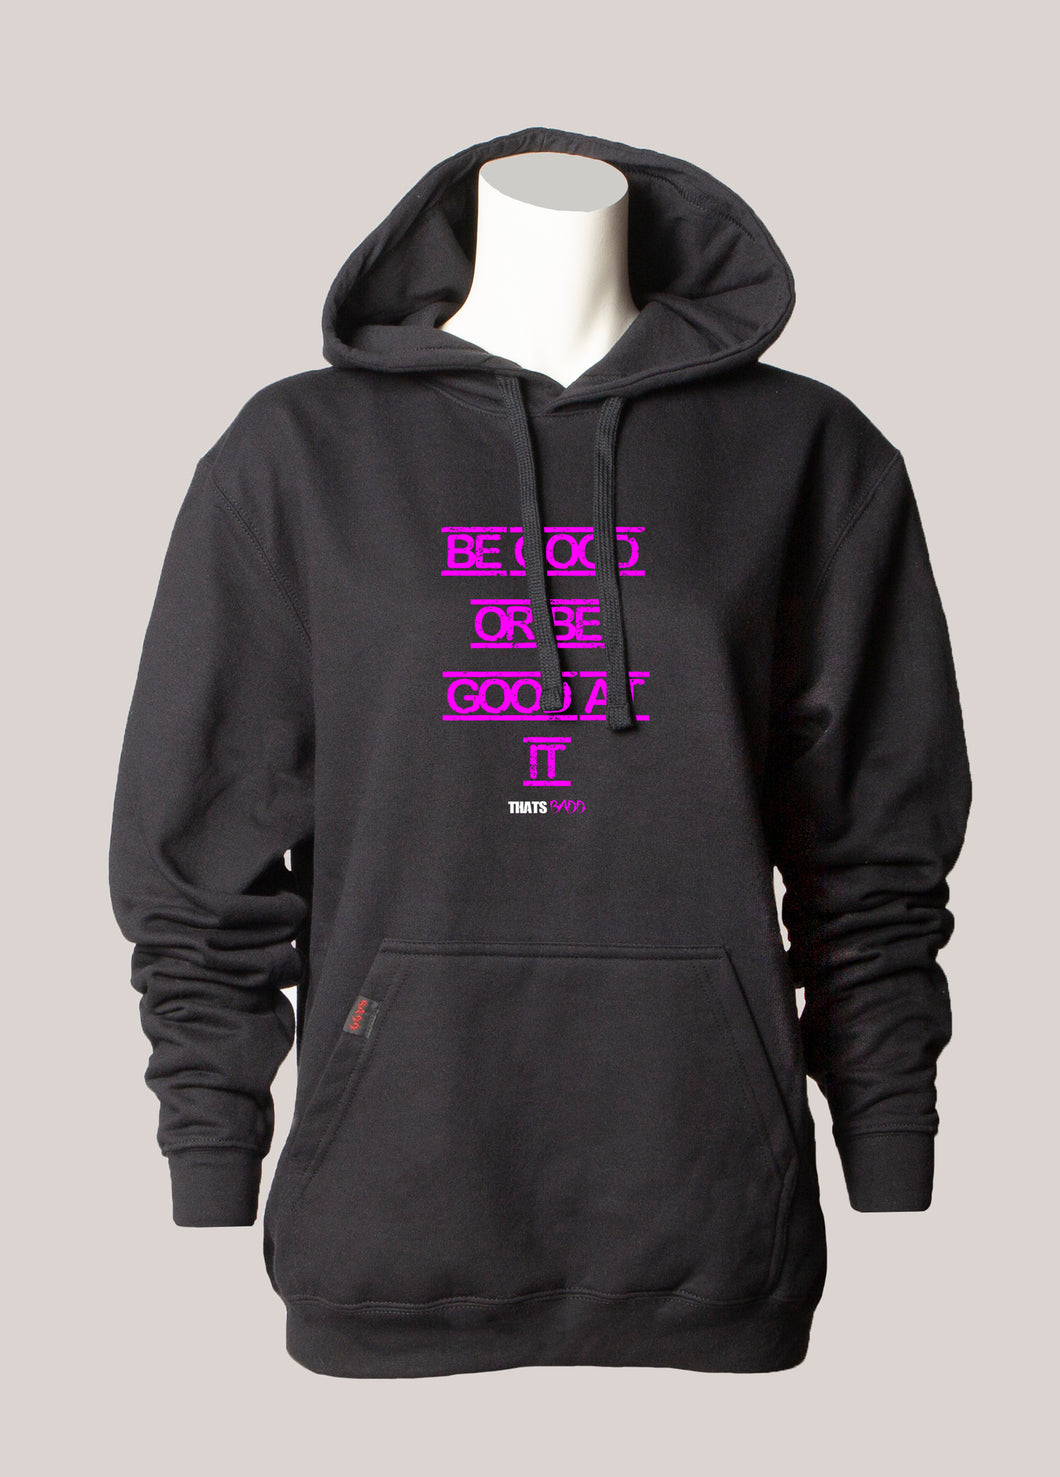 BE GOOD AT IT Women's Hoodie Black